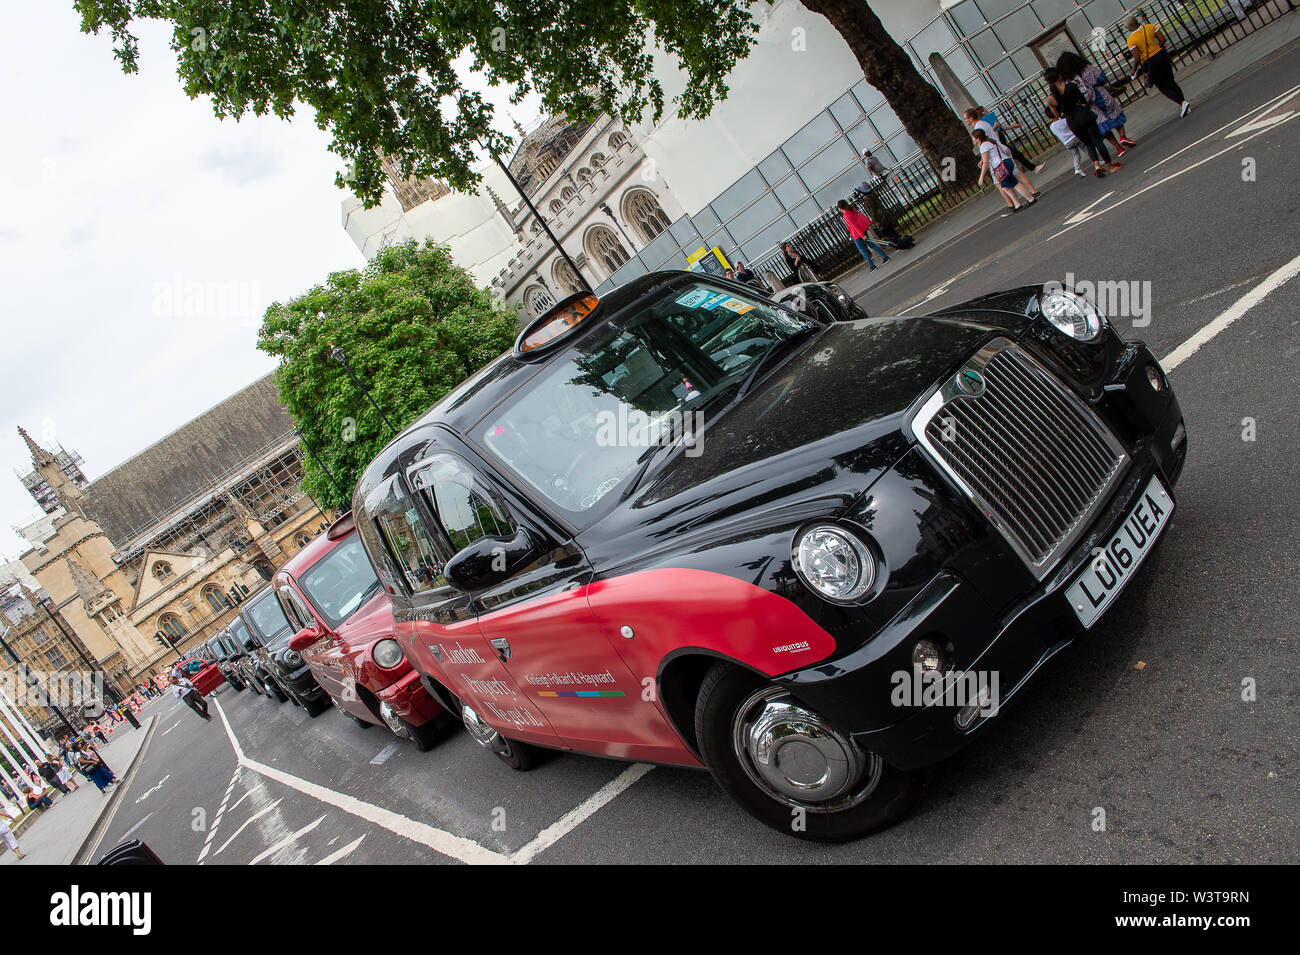 "Taxi Driver Protest, Westminster Square, London, UK. 17th July, 2019. Taxi drivers brought Westminster and the the surrounding area to a halt this afternoon as part of their weekly protest by blocking the roads  around Parliament Square with their black cabs. TFL plan to stop taxi drivers from using some roads around London and London cabbies are not happy about it. Their message is ""Where buses go, taxis go"".  Credit: Maureen McLean/Alamy Live News Stock Photo"